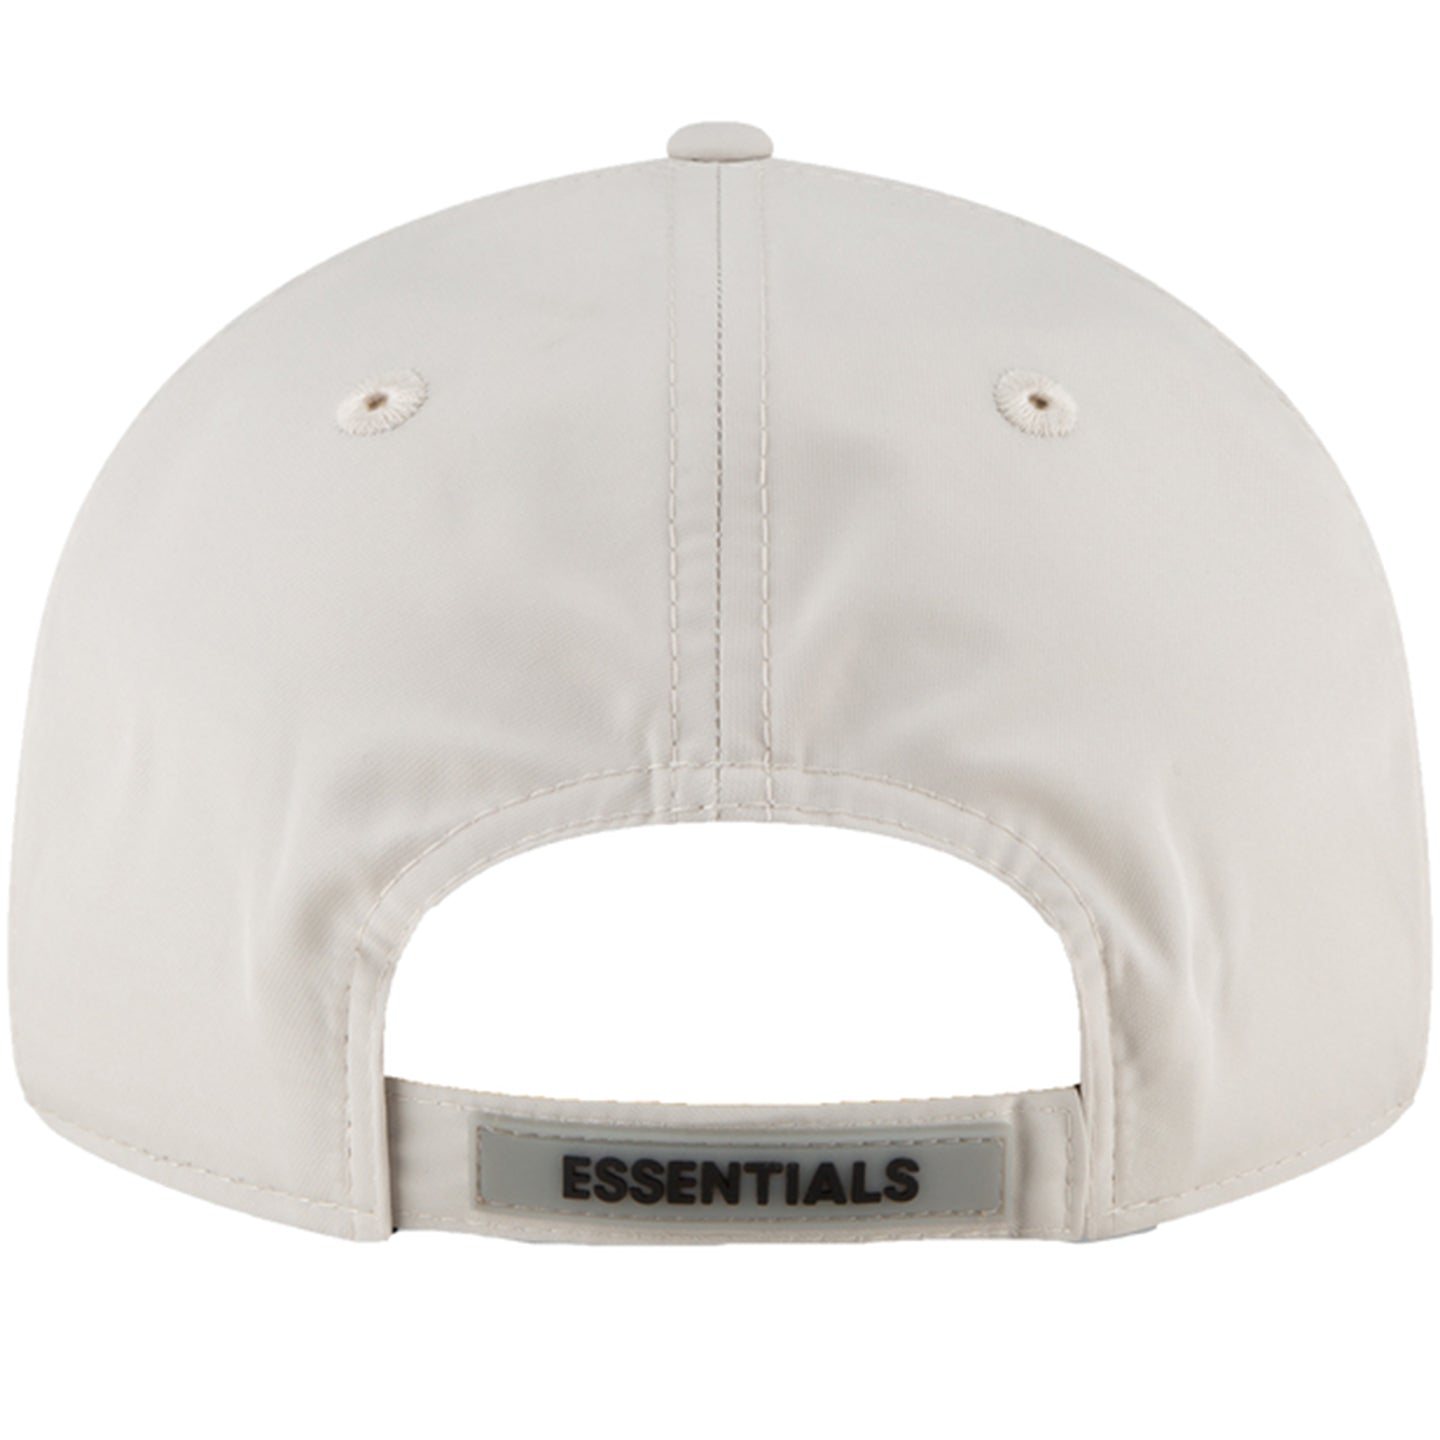 FEAR OF GOD ESSENTIALS RETRO HAT MOONSTRUCK